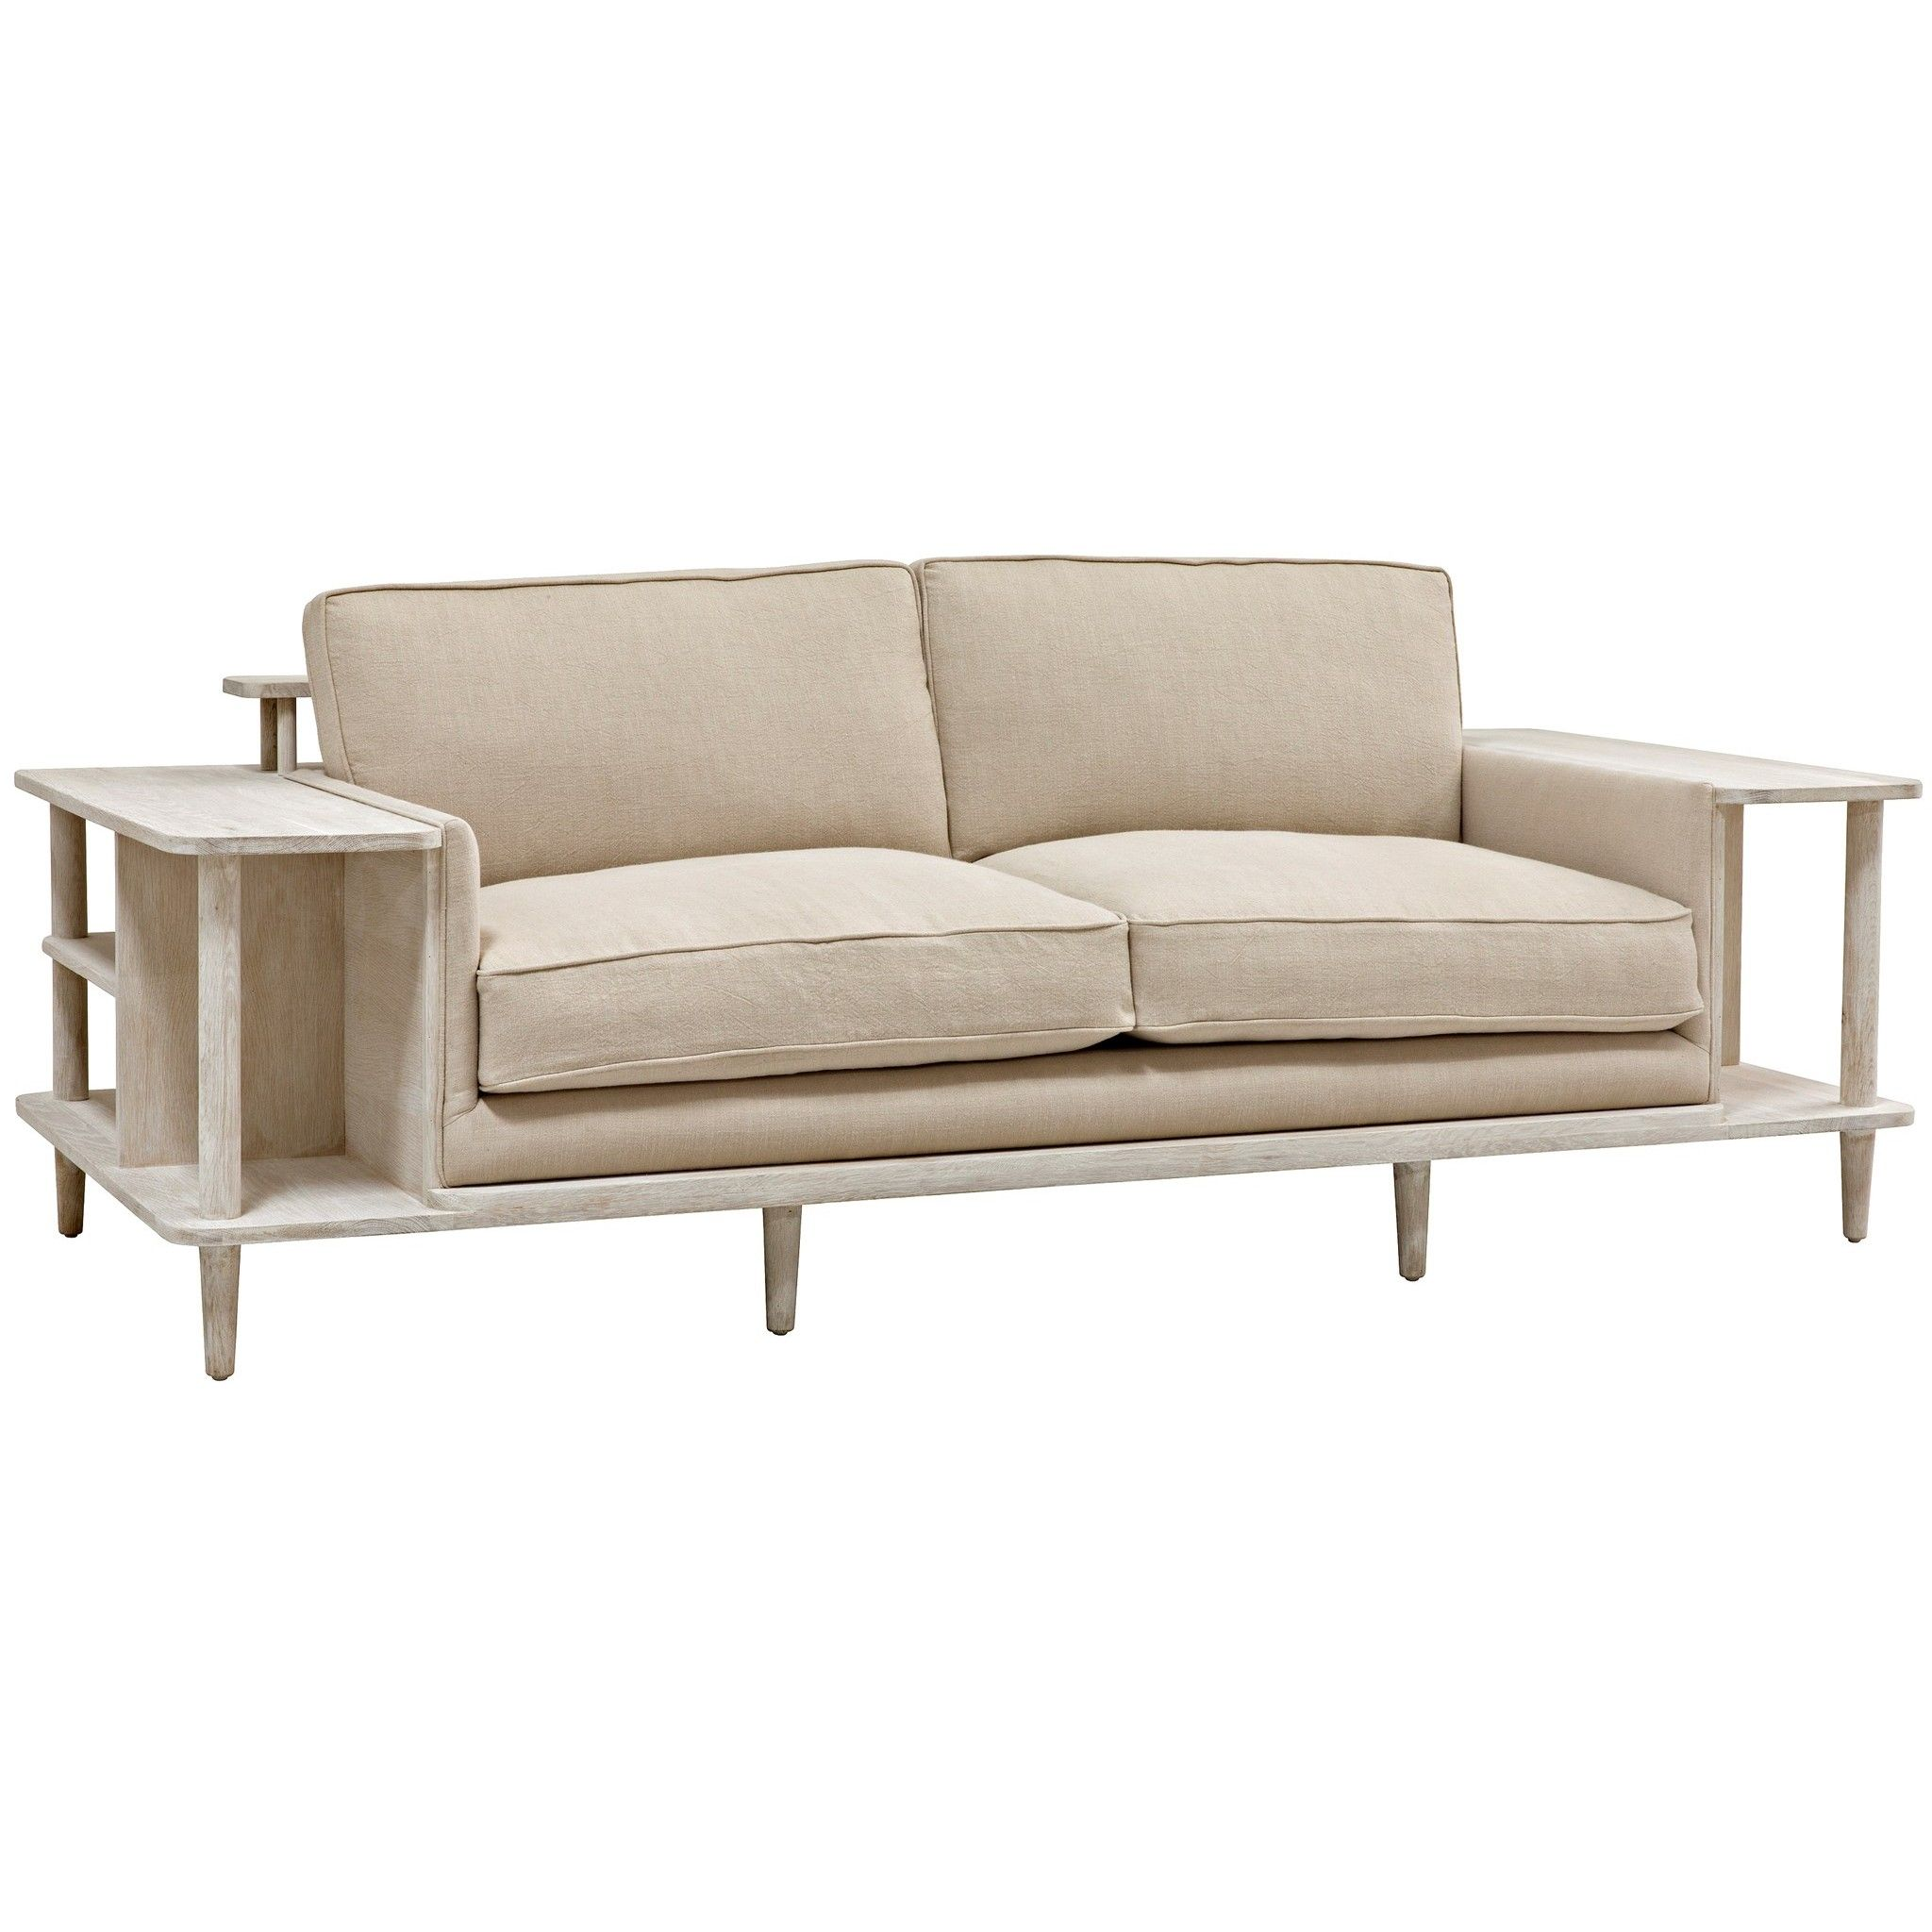 Sofa Online Purchase 20 Best Modern Couches Contemporary Sofas You Can Buy Online